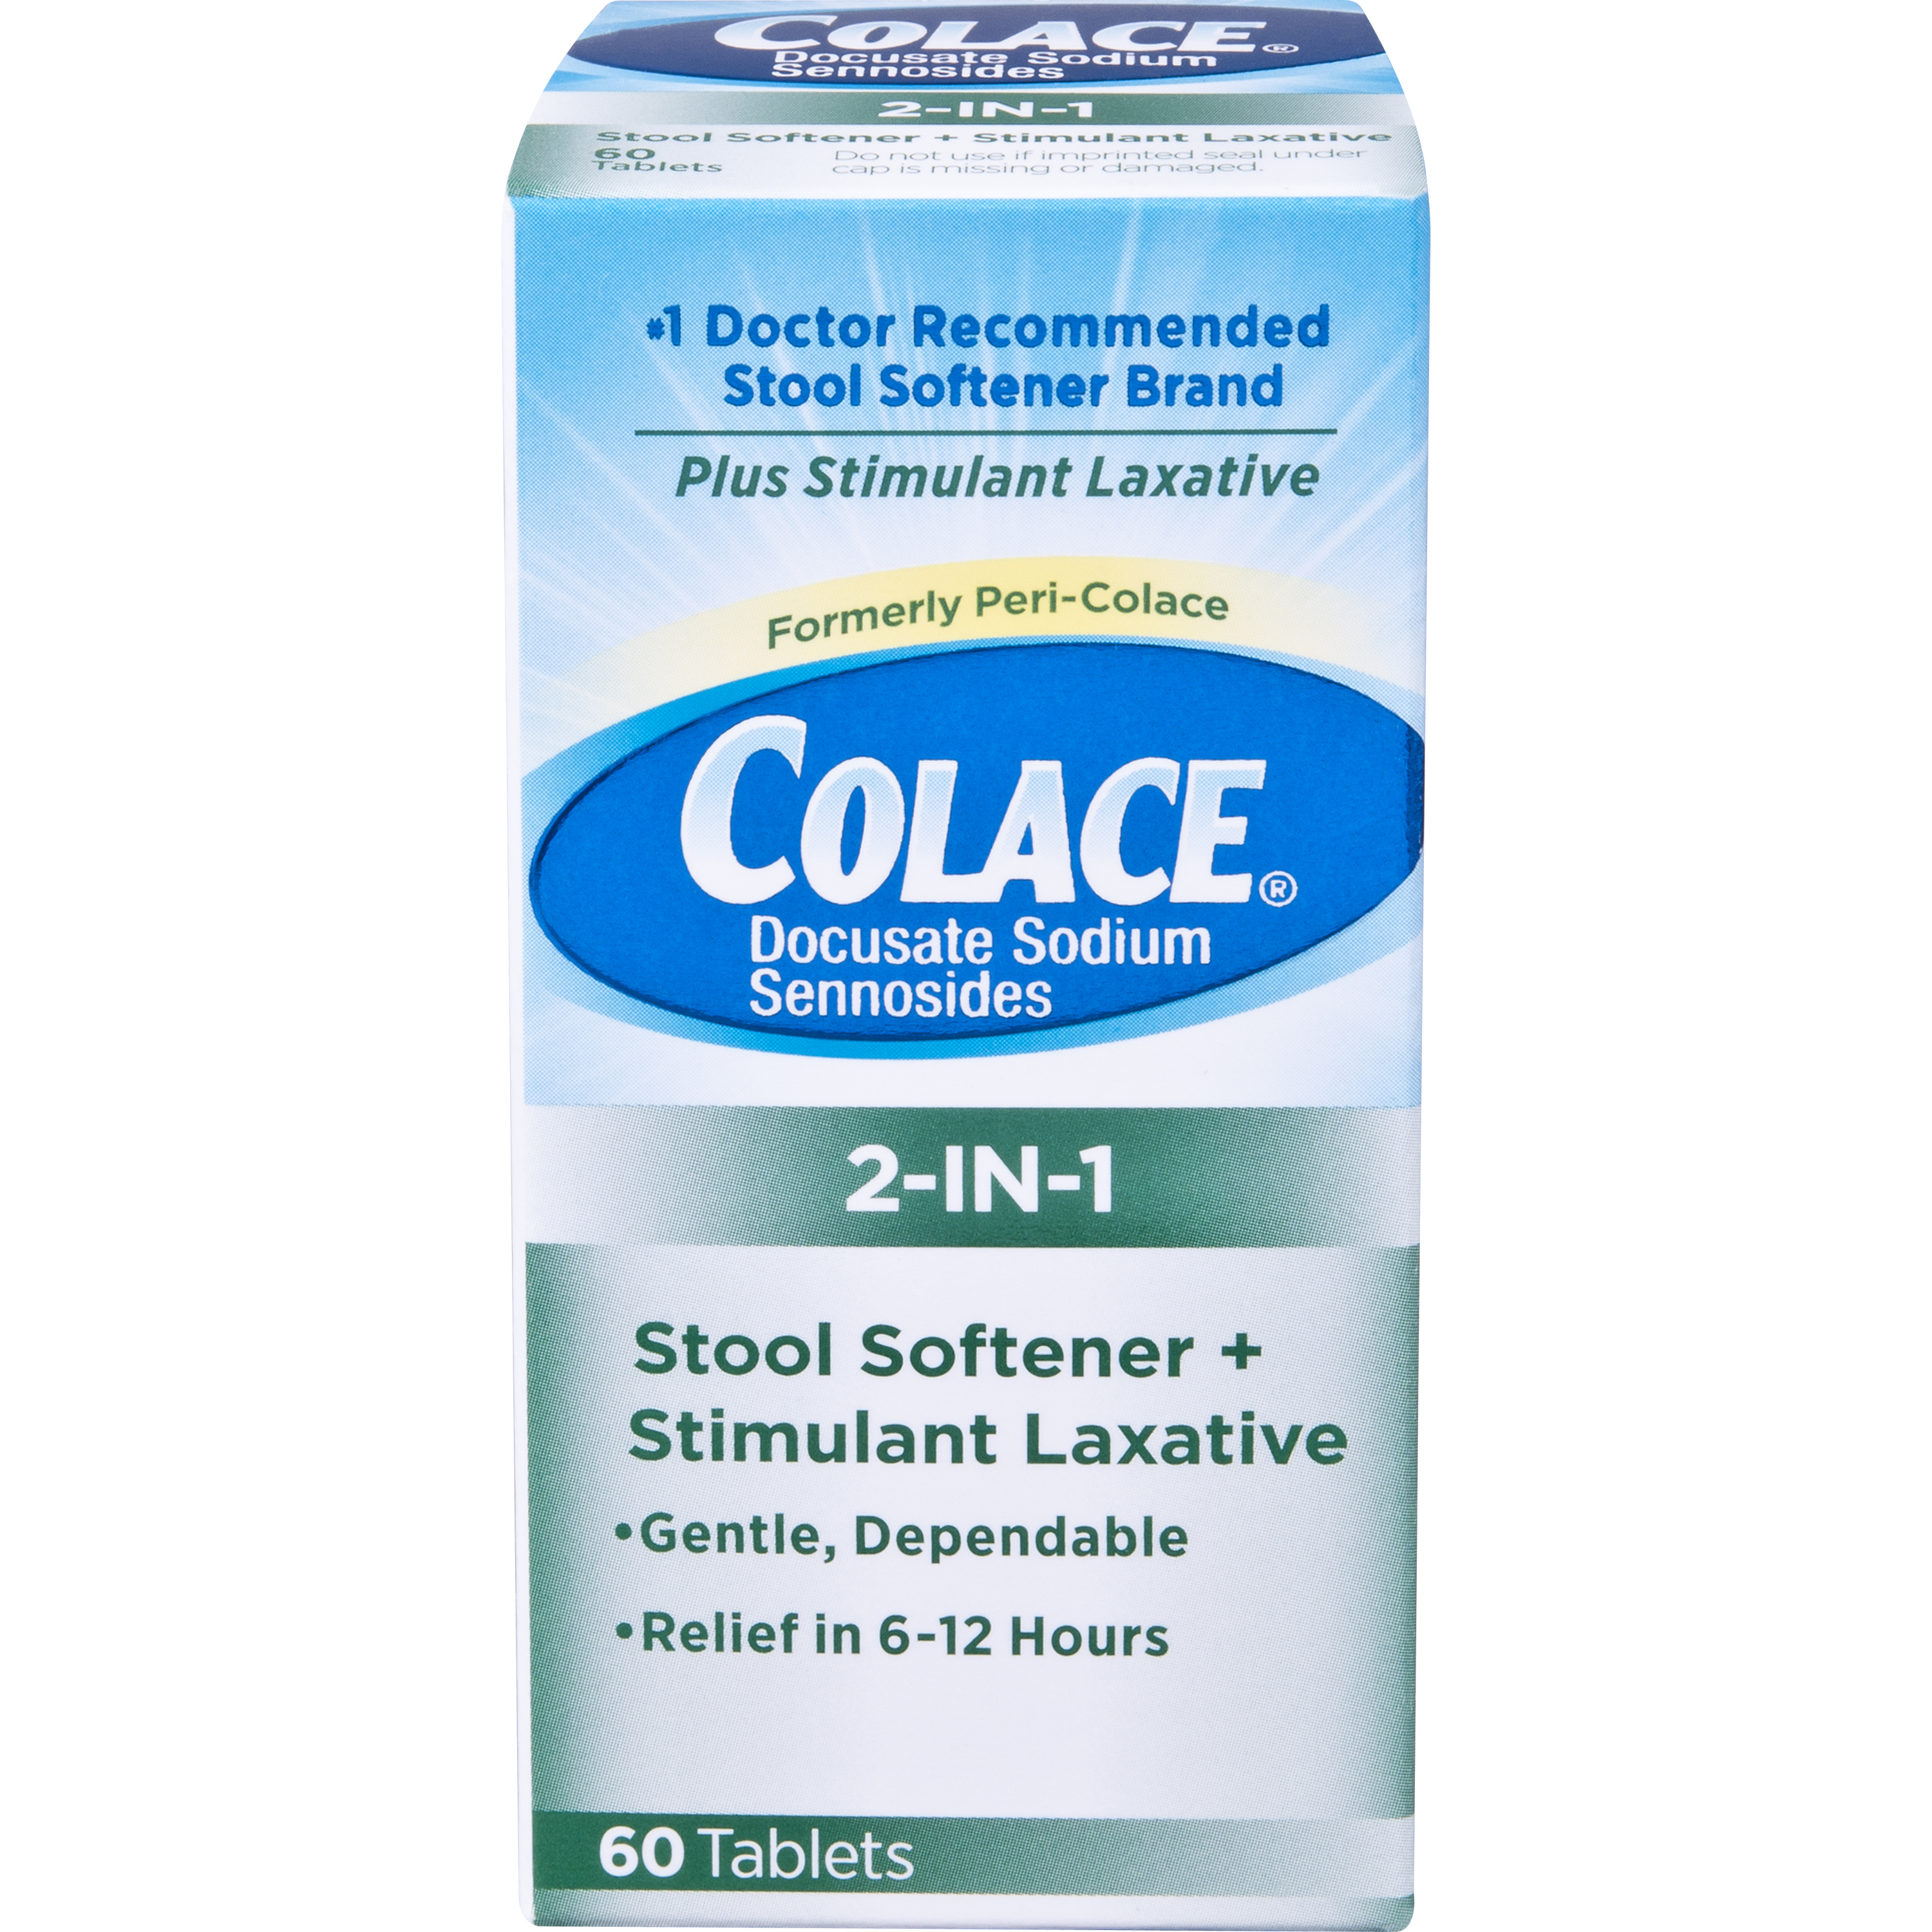 Colace 2-ini-1 Tablets, 60 ct